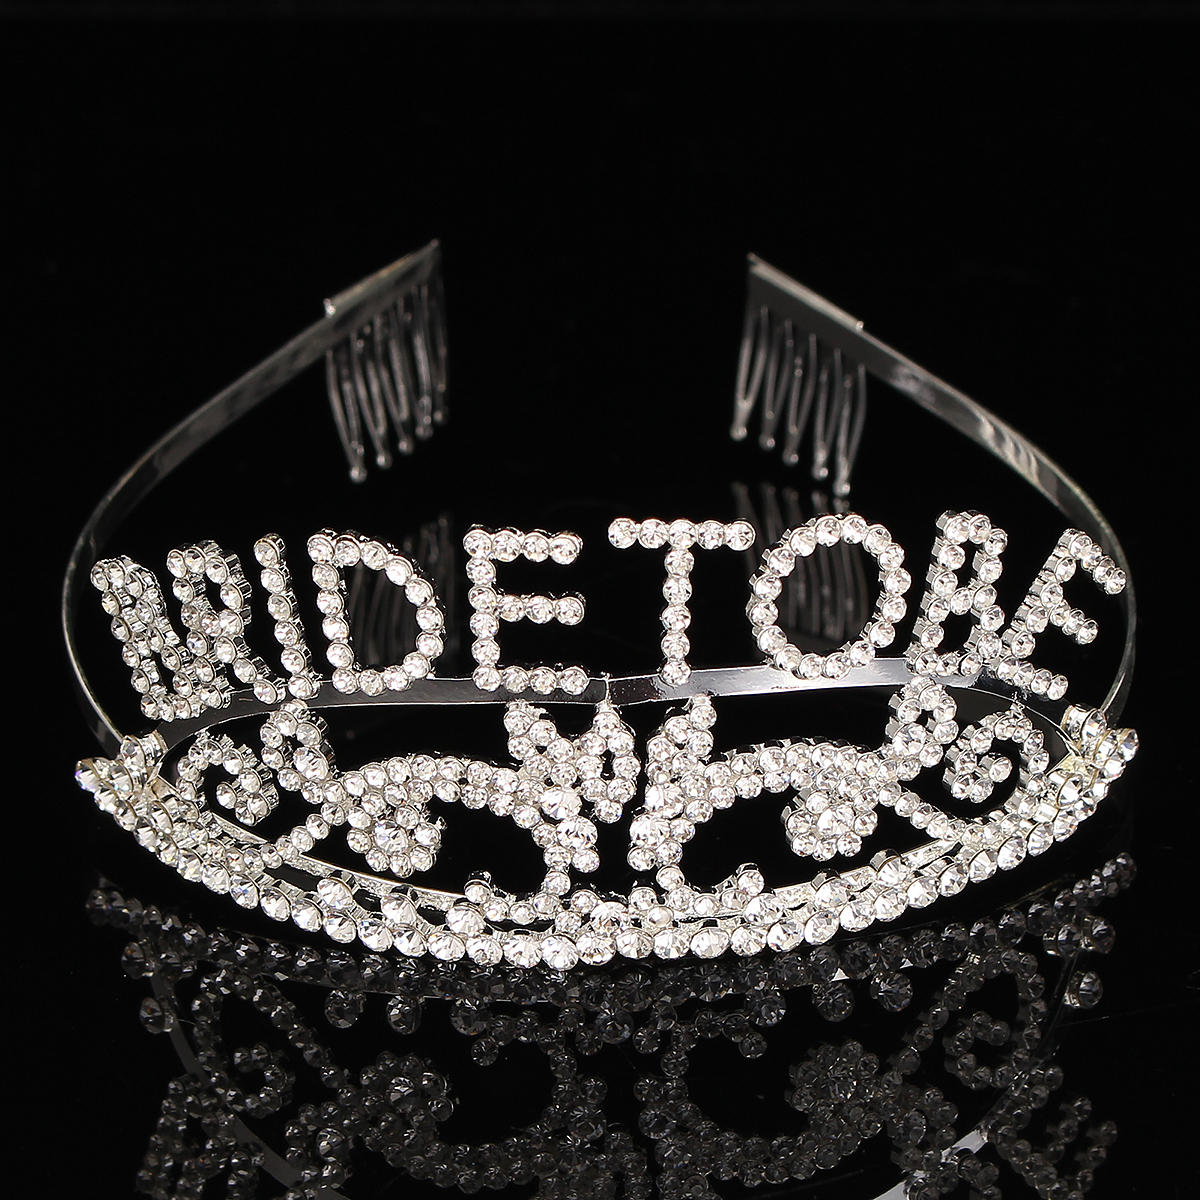 Bachelorette Sparkle tiara Hen Party Crown Bride to Be Bridal Shower Supply TO